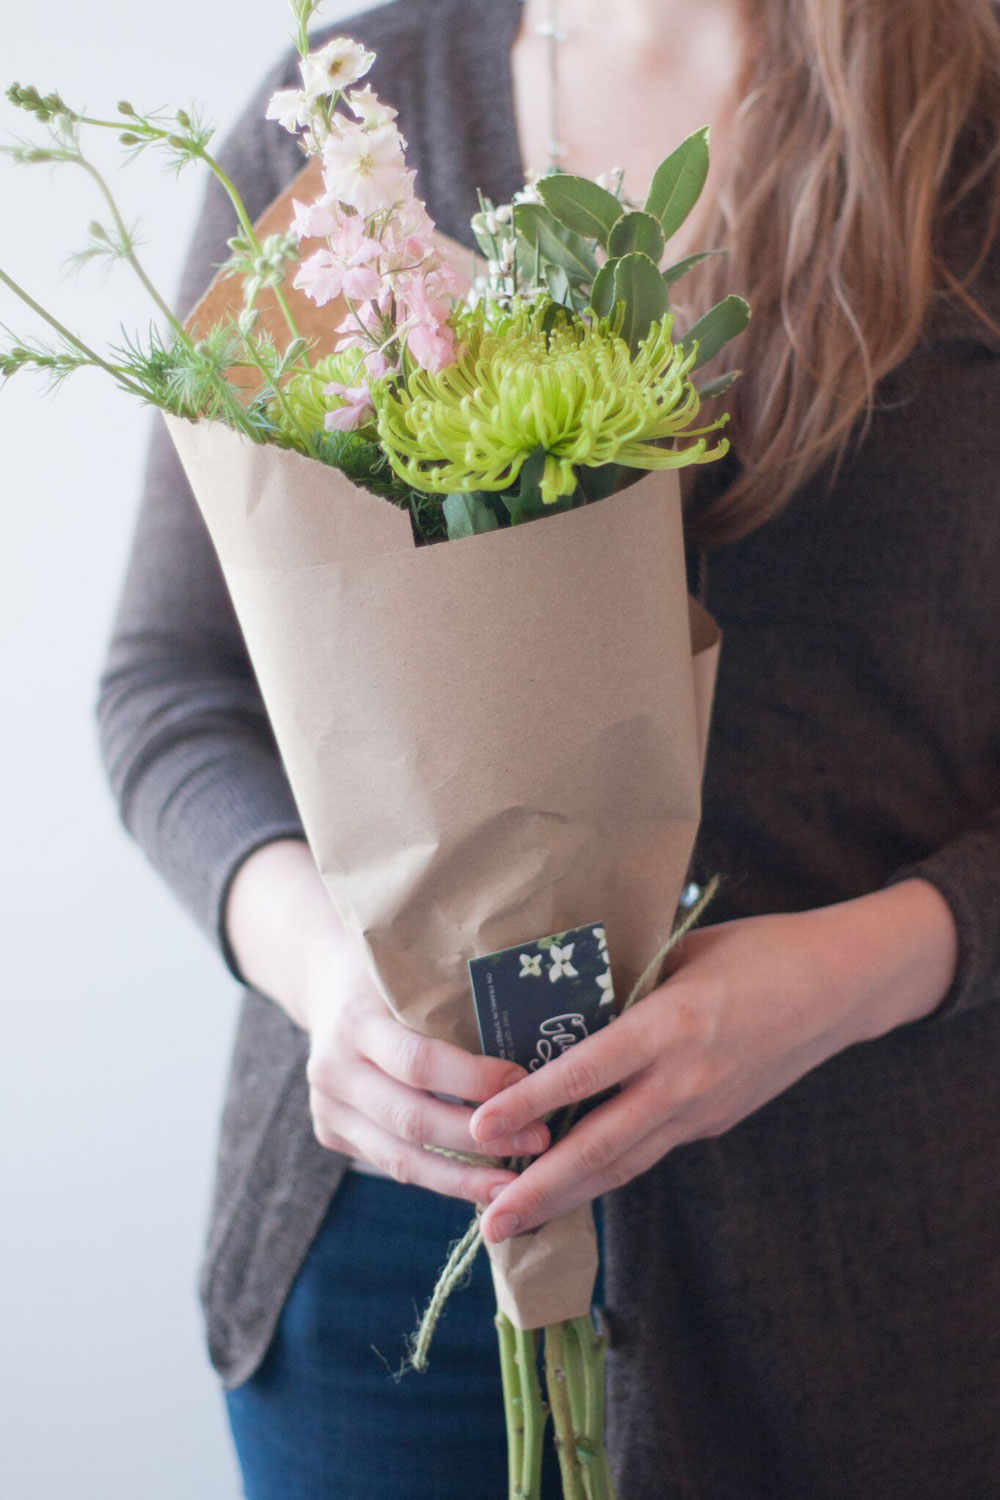 Giving Someone Flowers | Gather Goods Co